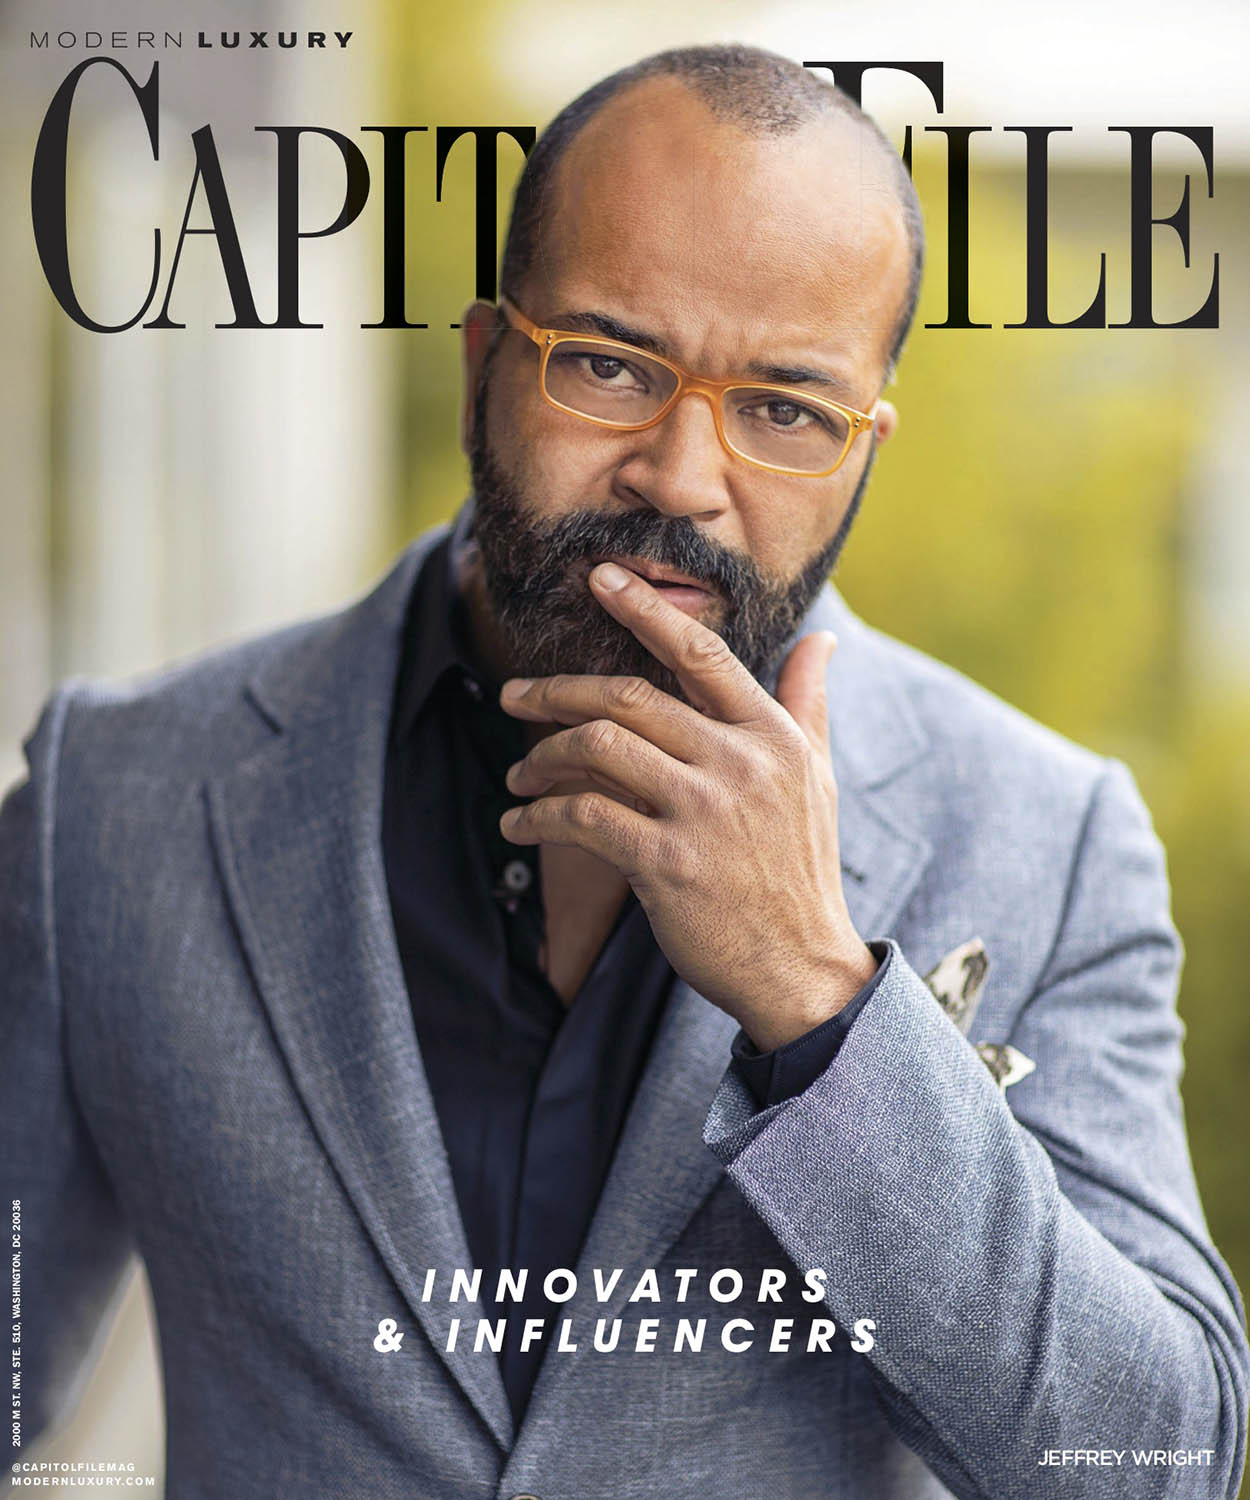 capitolfile_cover_jeffreywright